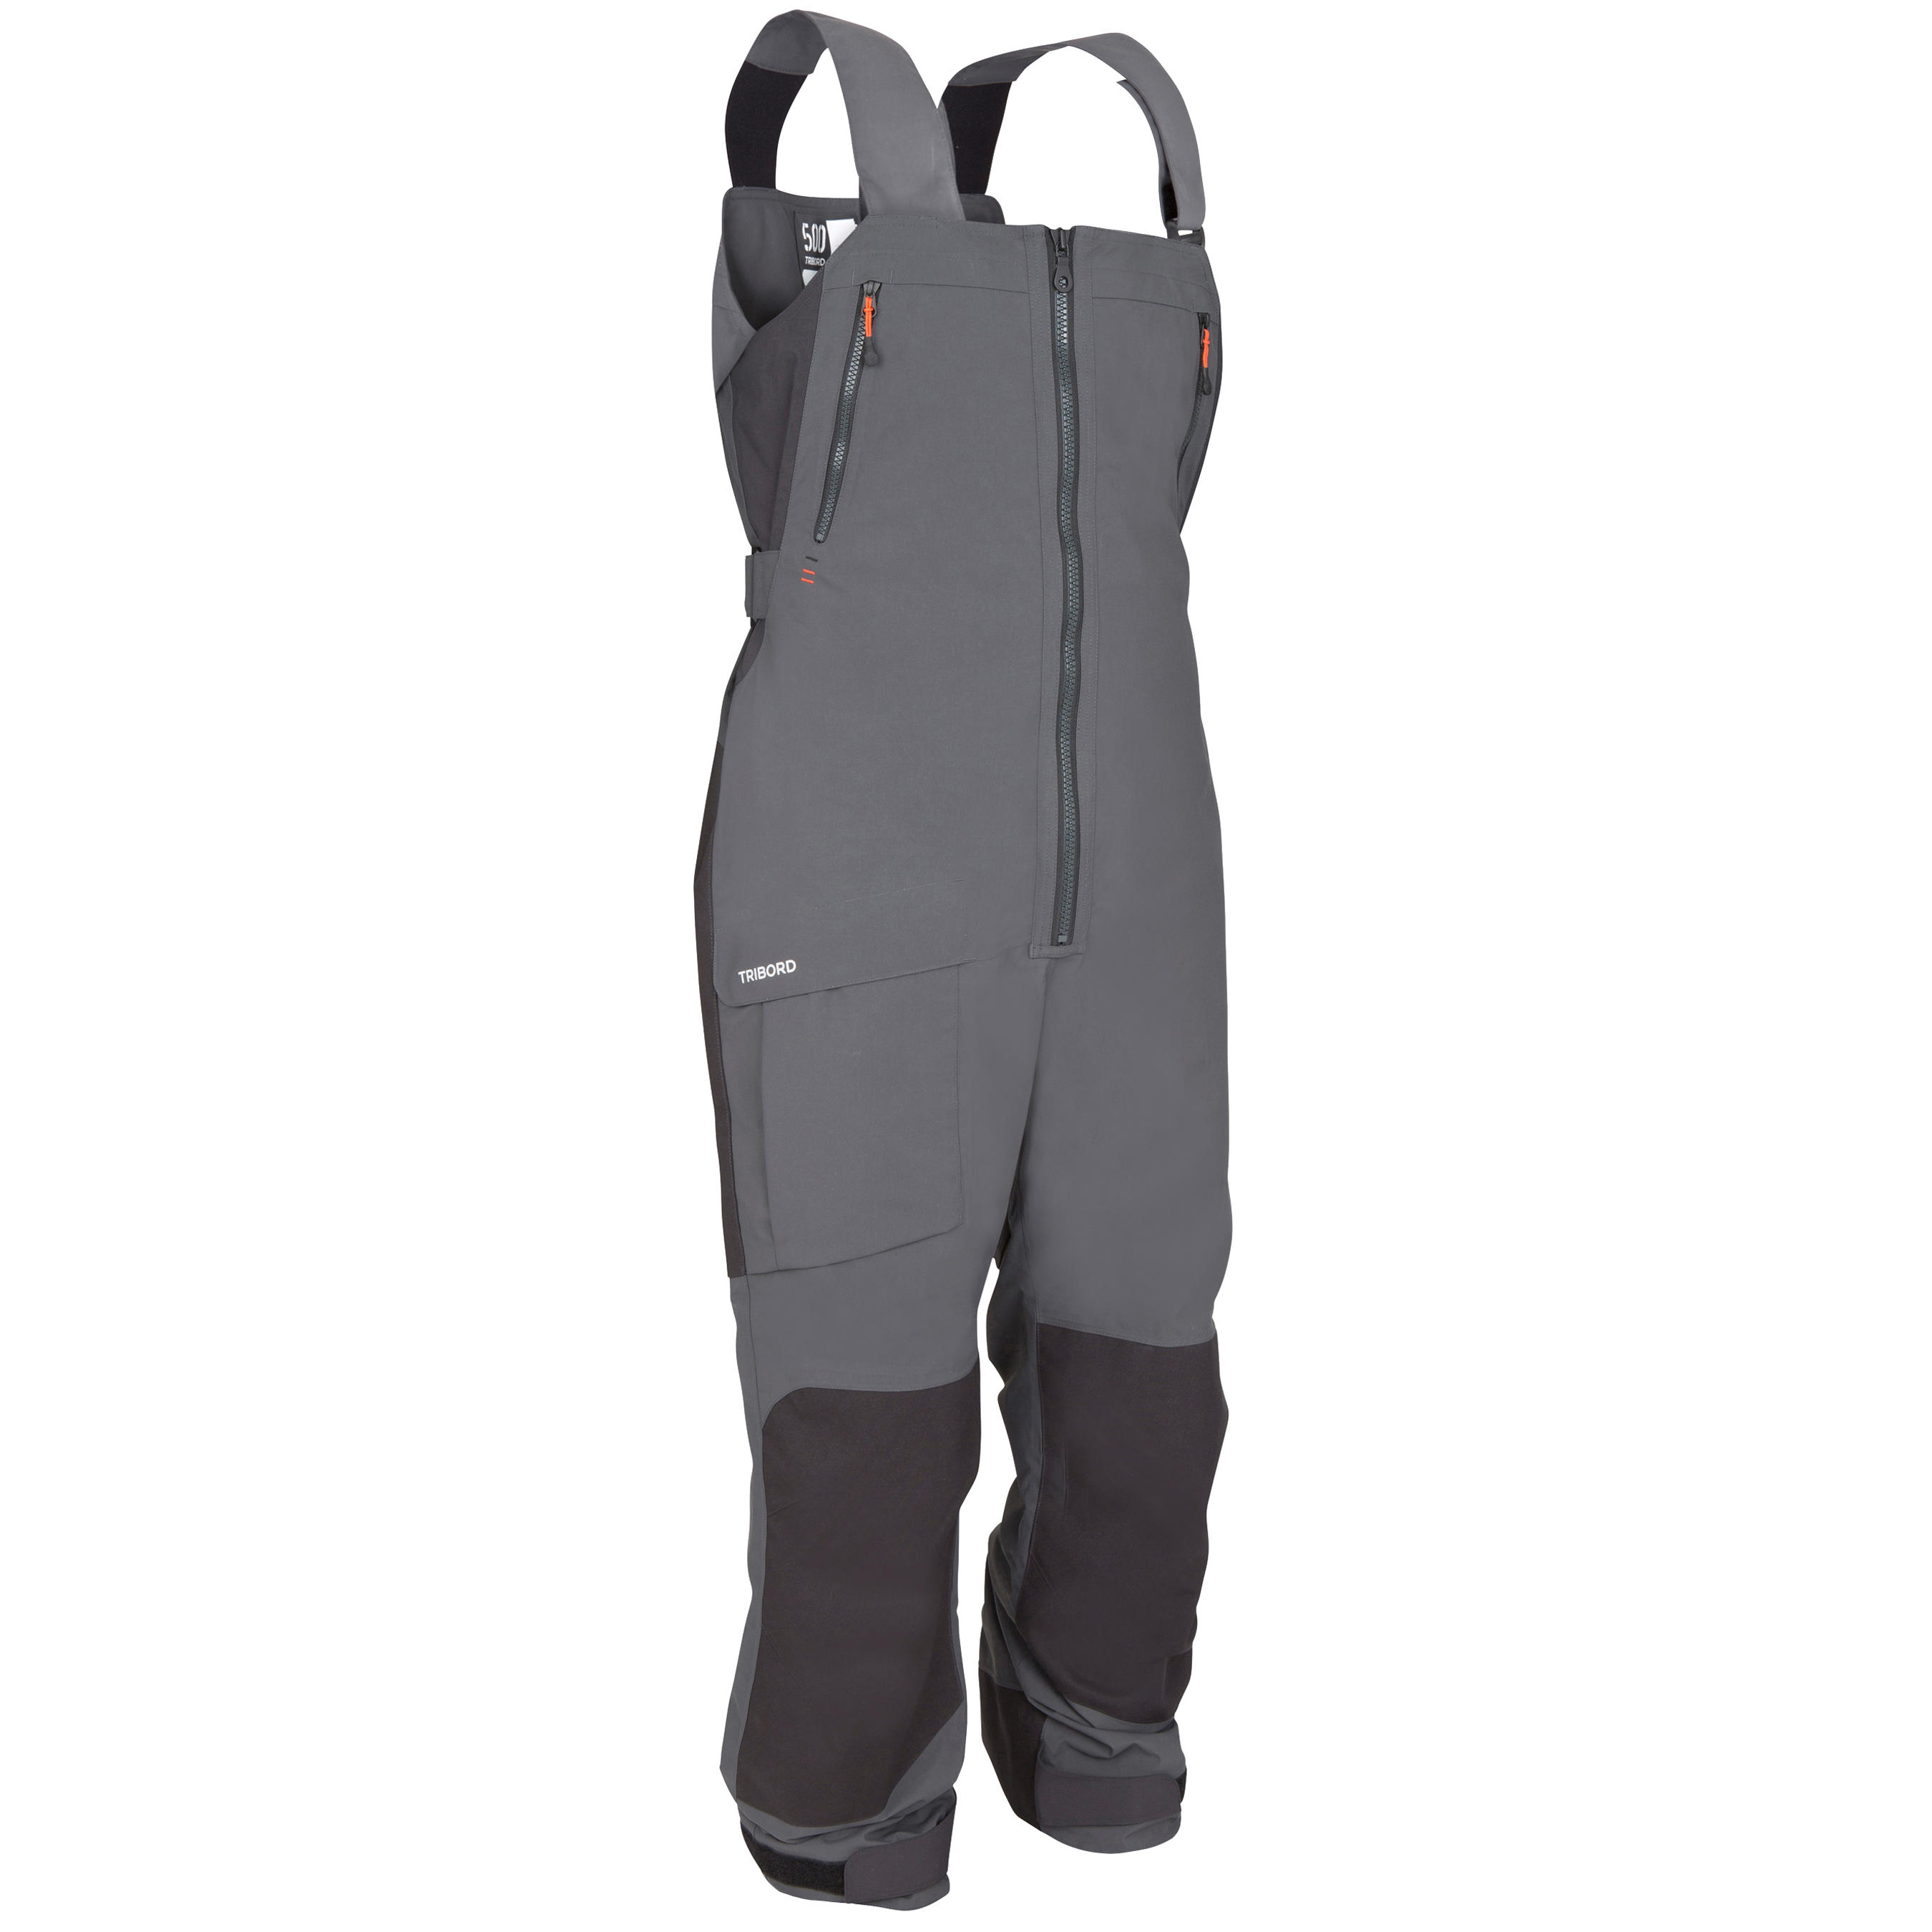 Race Men's Sailing Overalls- Grey